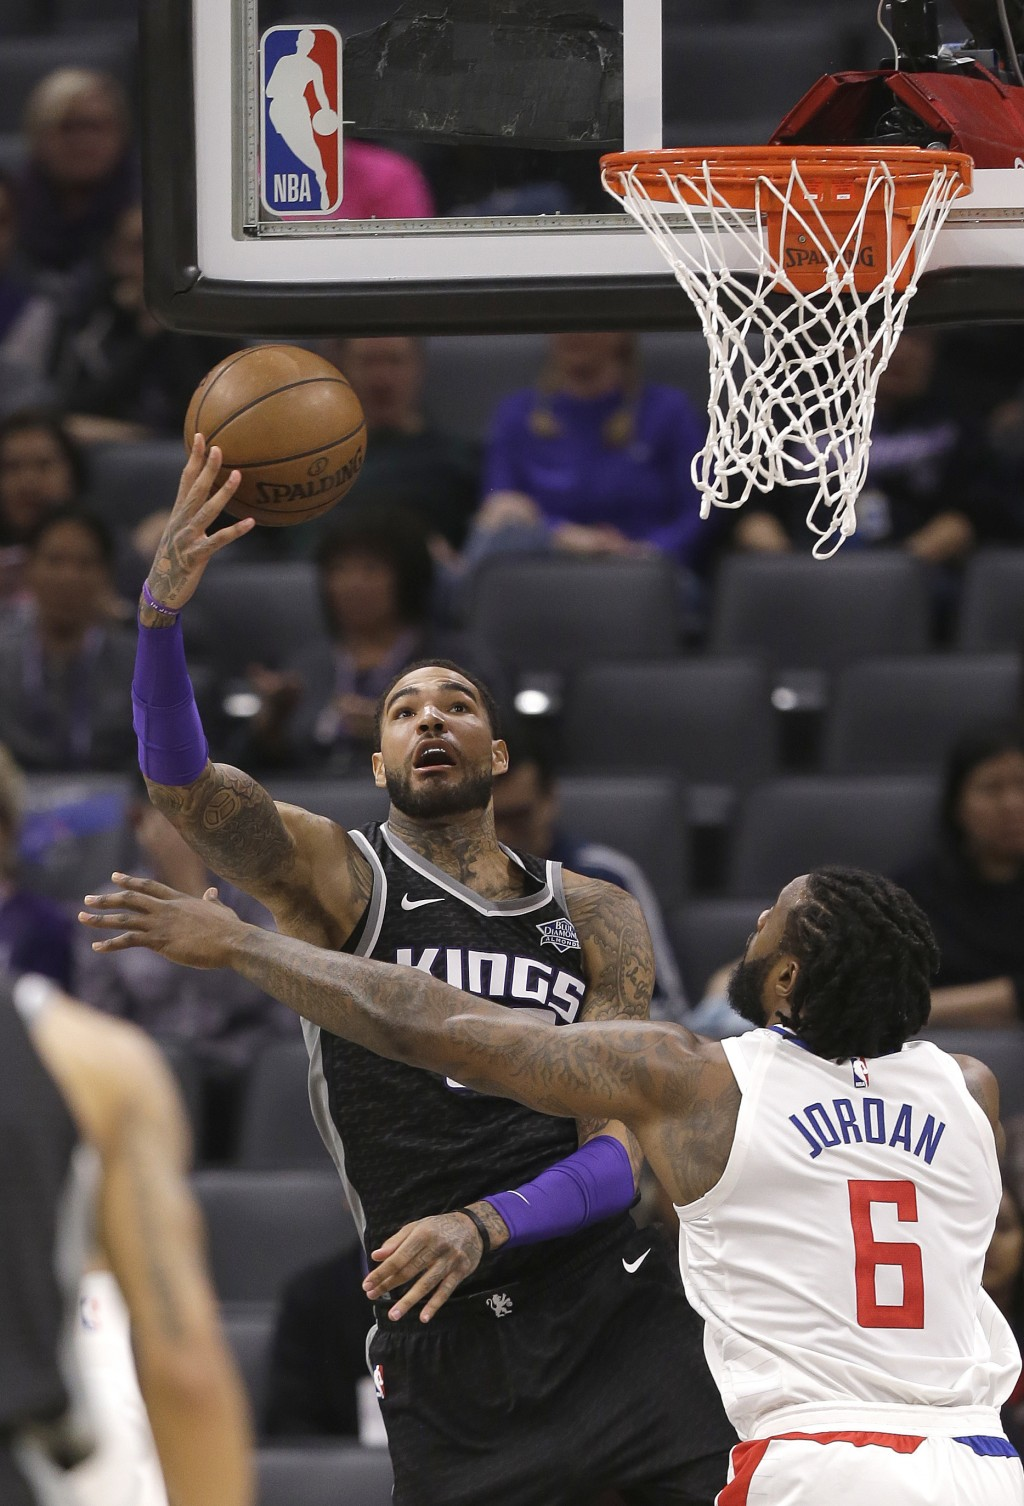 Sacramento Kings center Willie Cauley-Stein, left, goes to the basket against Los Angeles Clippers center DeAndre Jordan during the first quarter of a